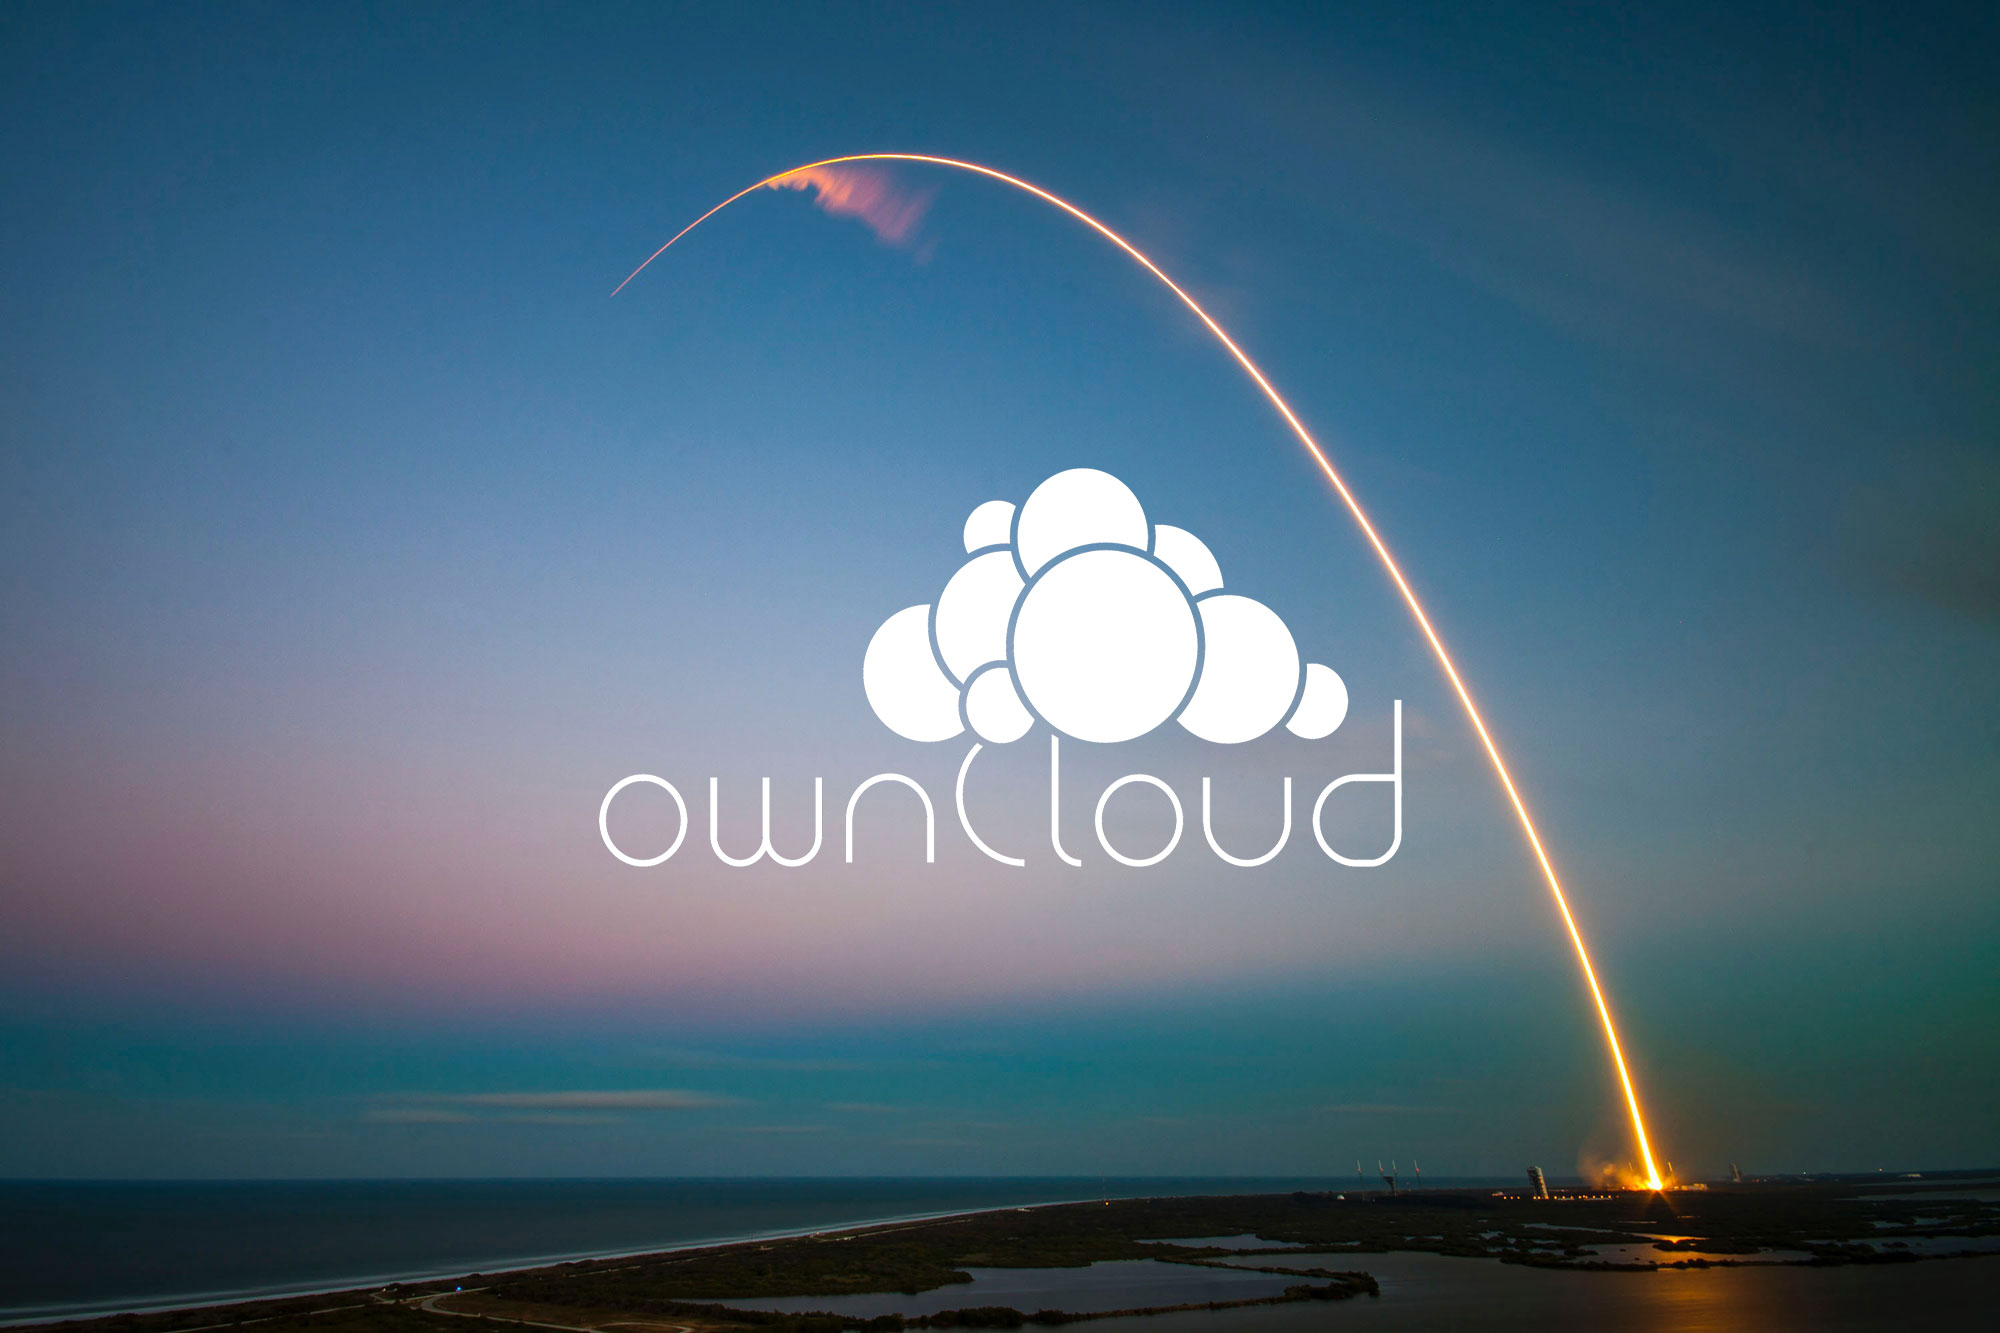 ✓ ownCloud - The leading OpenSource Cloud Collaboration